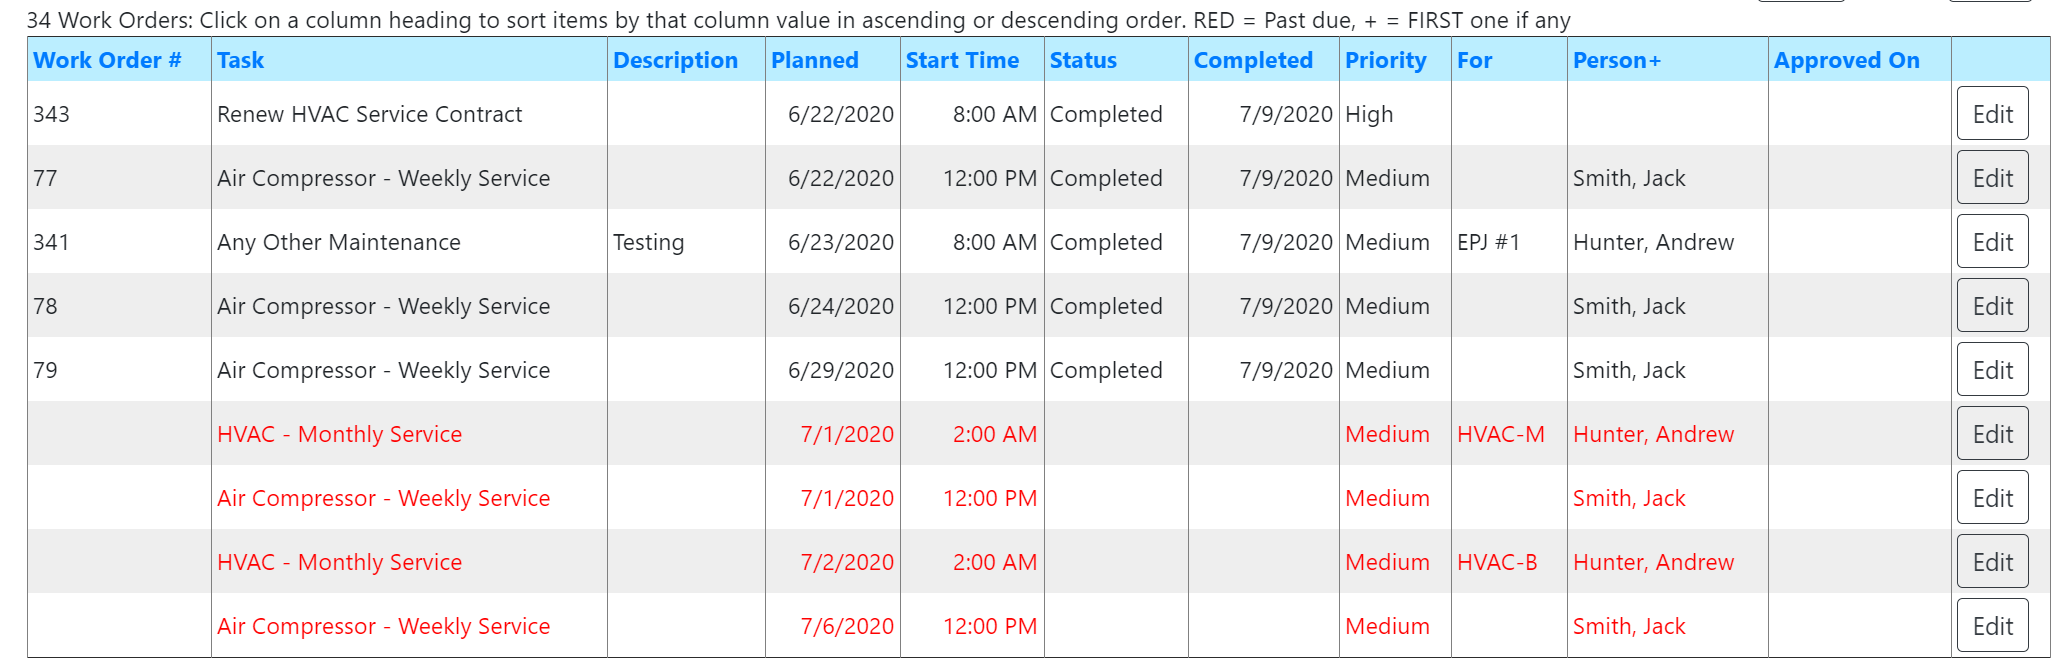 Work order list showing job status